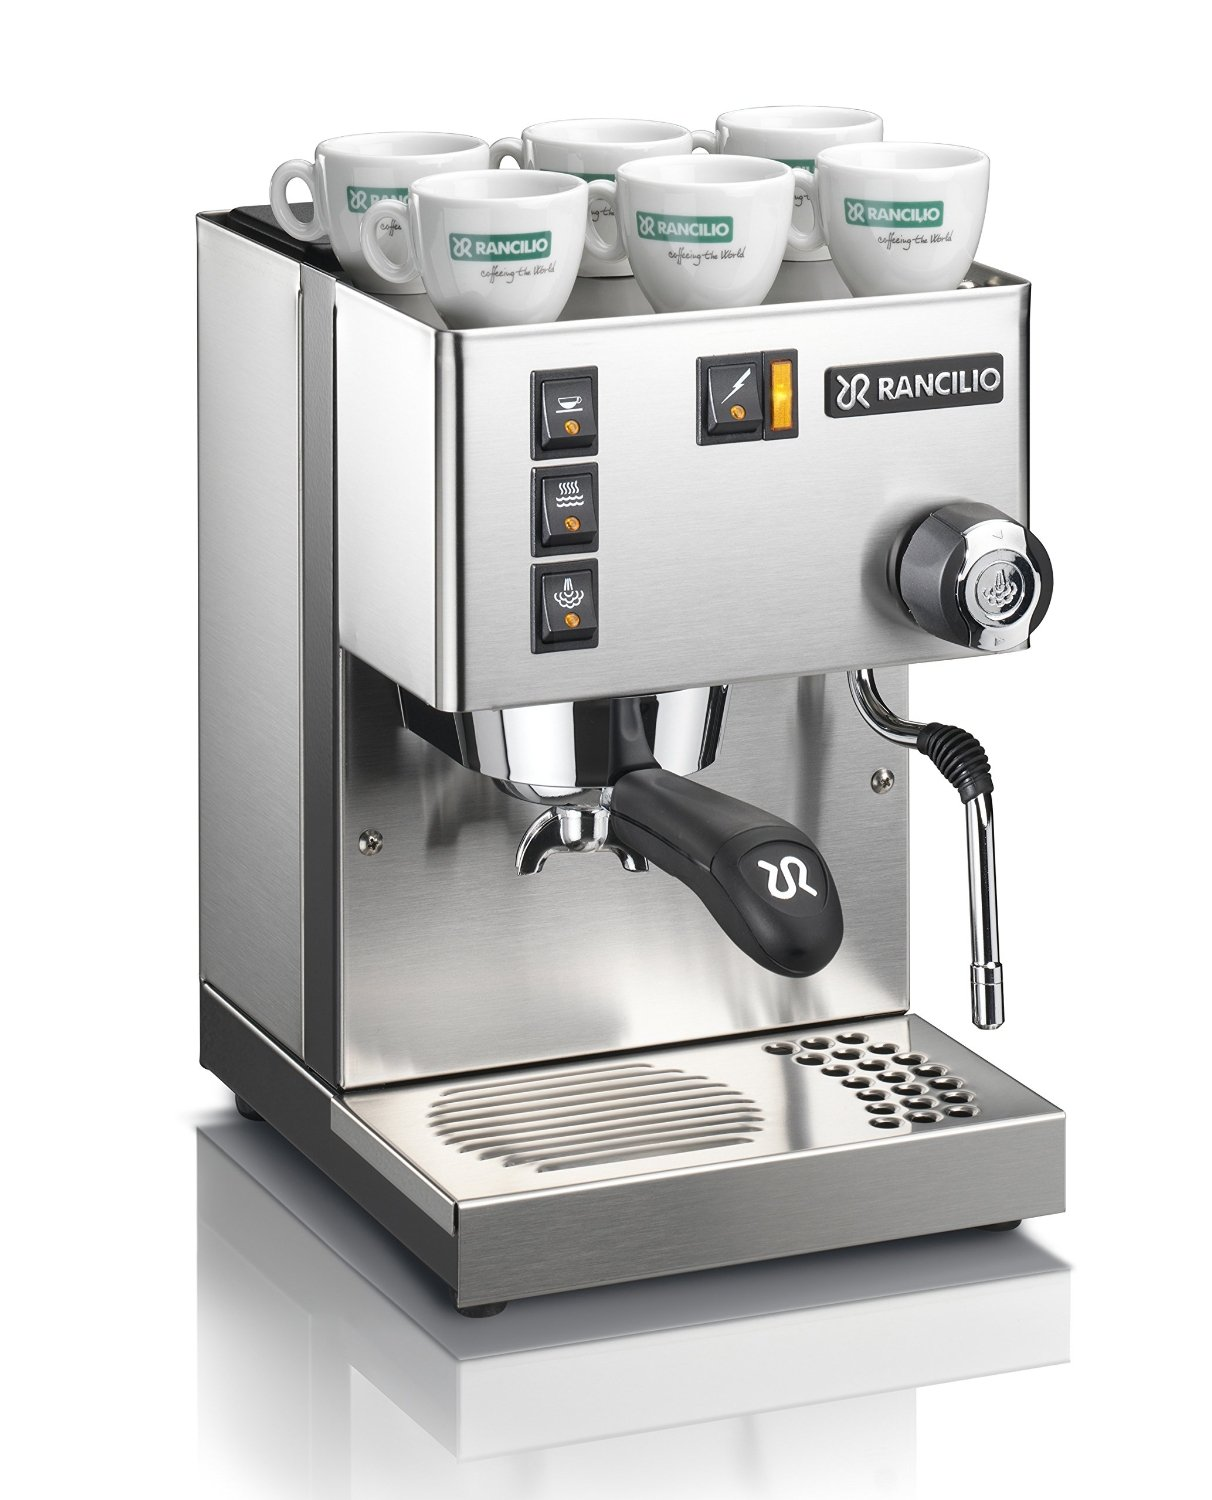 Rancilio Silvia Espresso Machine vs Breville BES900XL